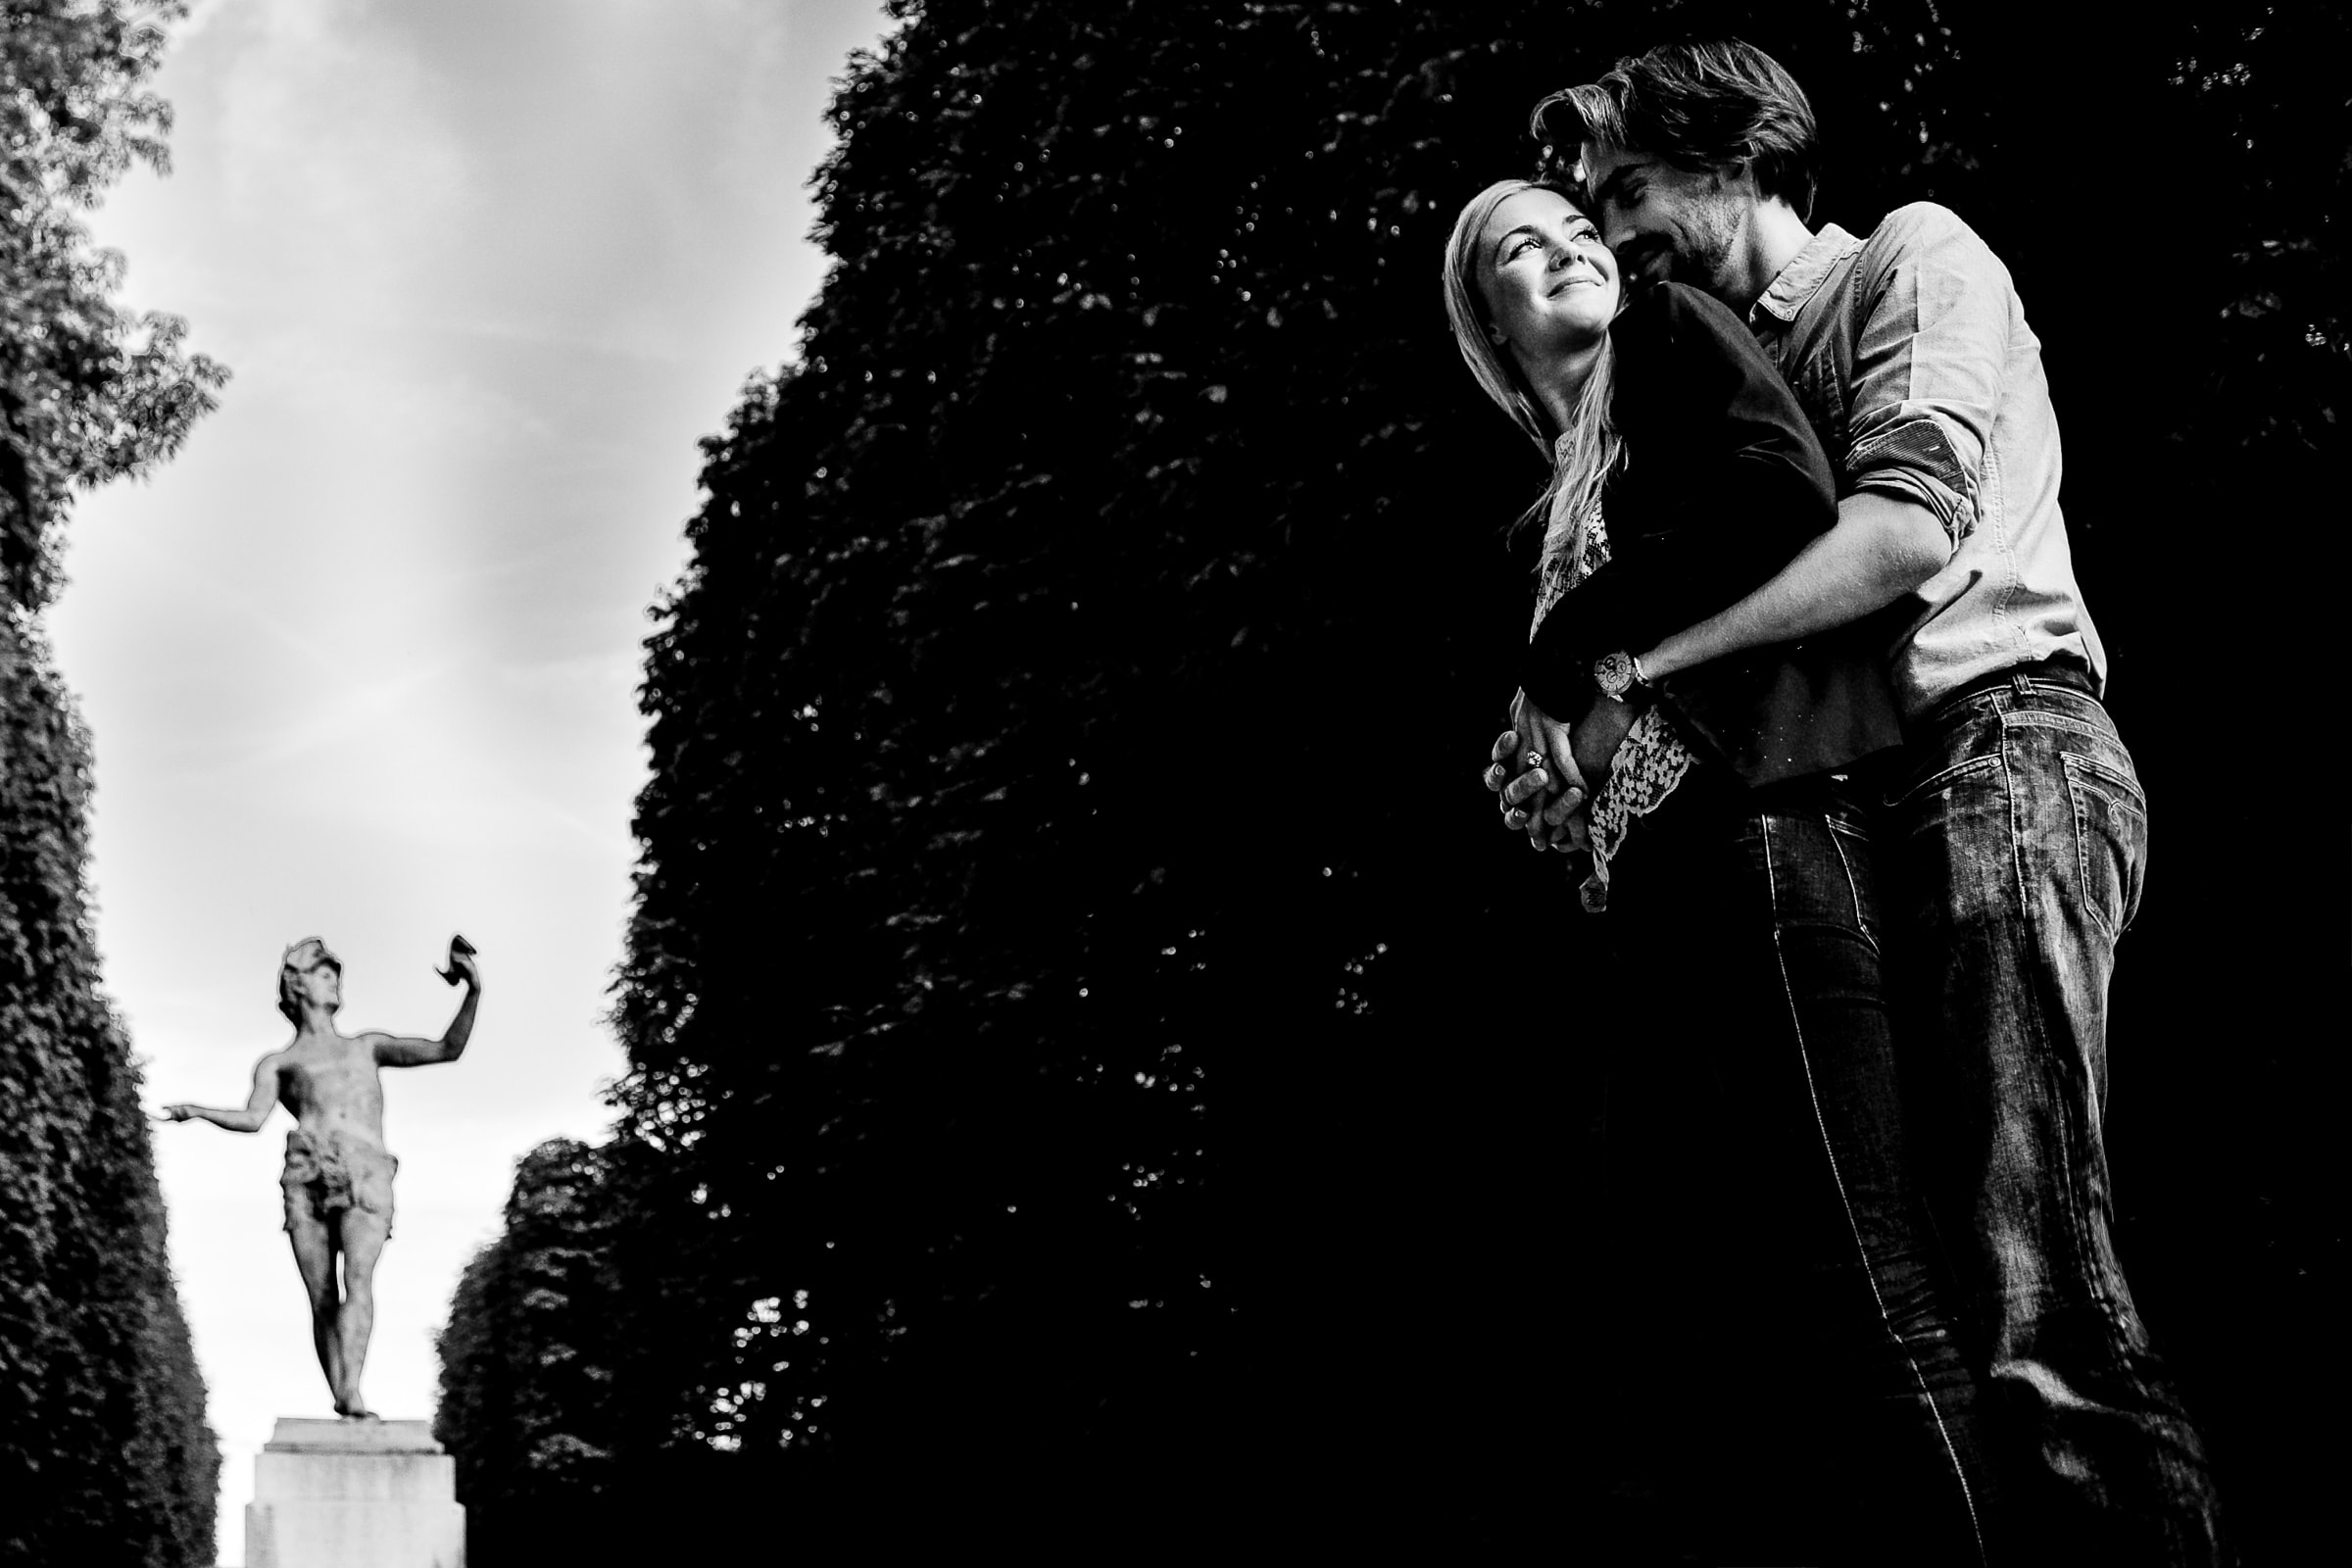 Engagement photo in Luxembourg Gardens in Paris, France.